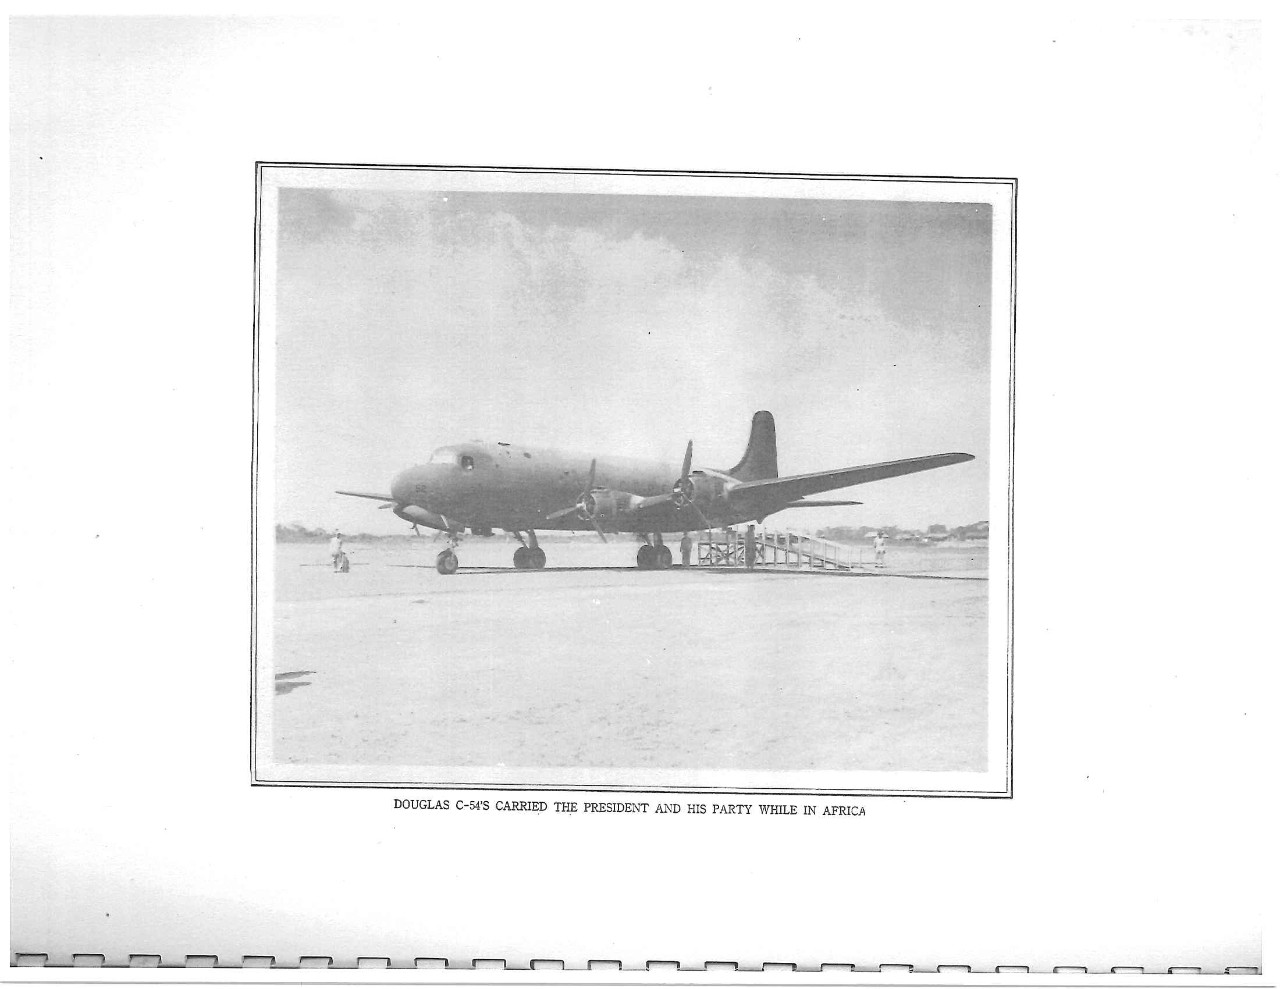 Douglas C-54's carried the President and his party while in Africa